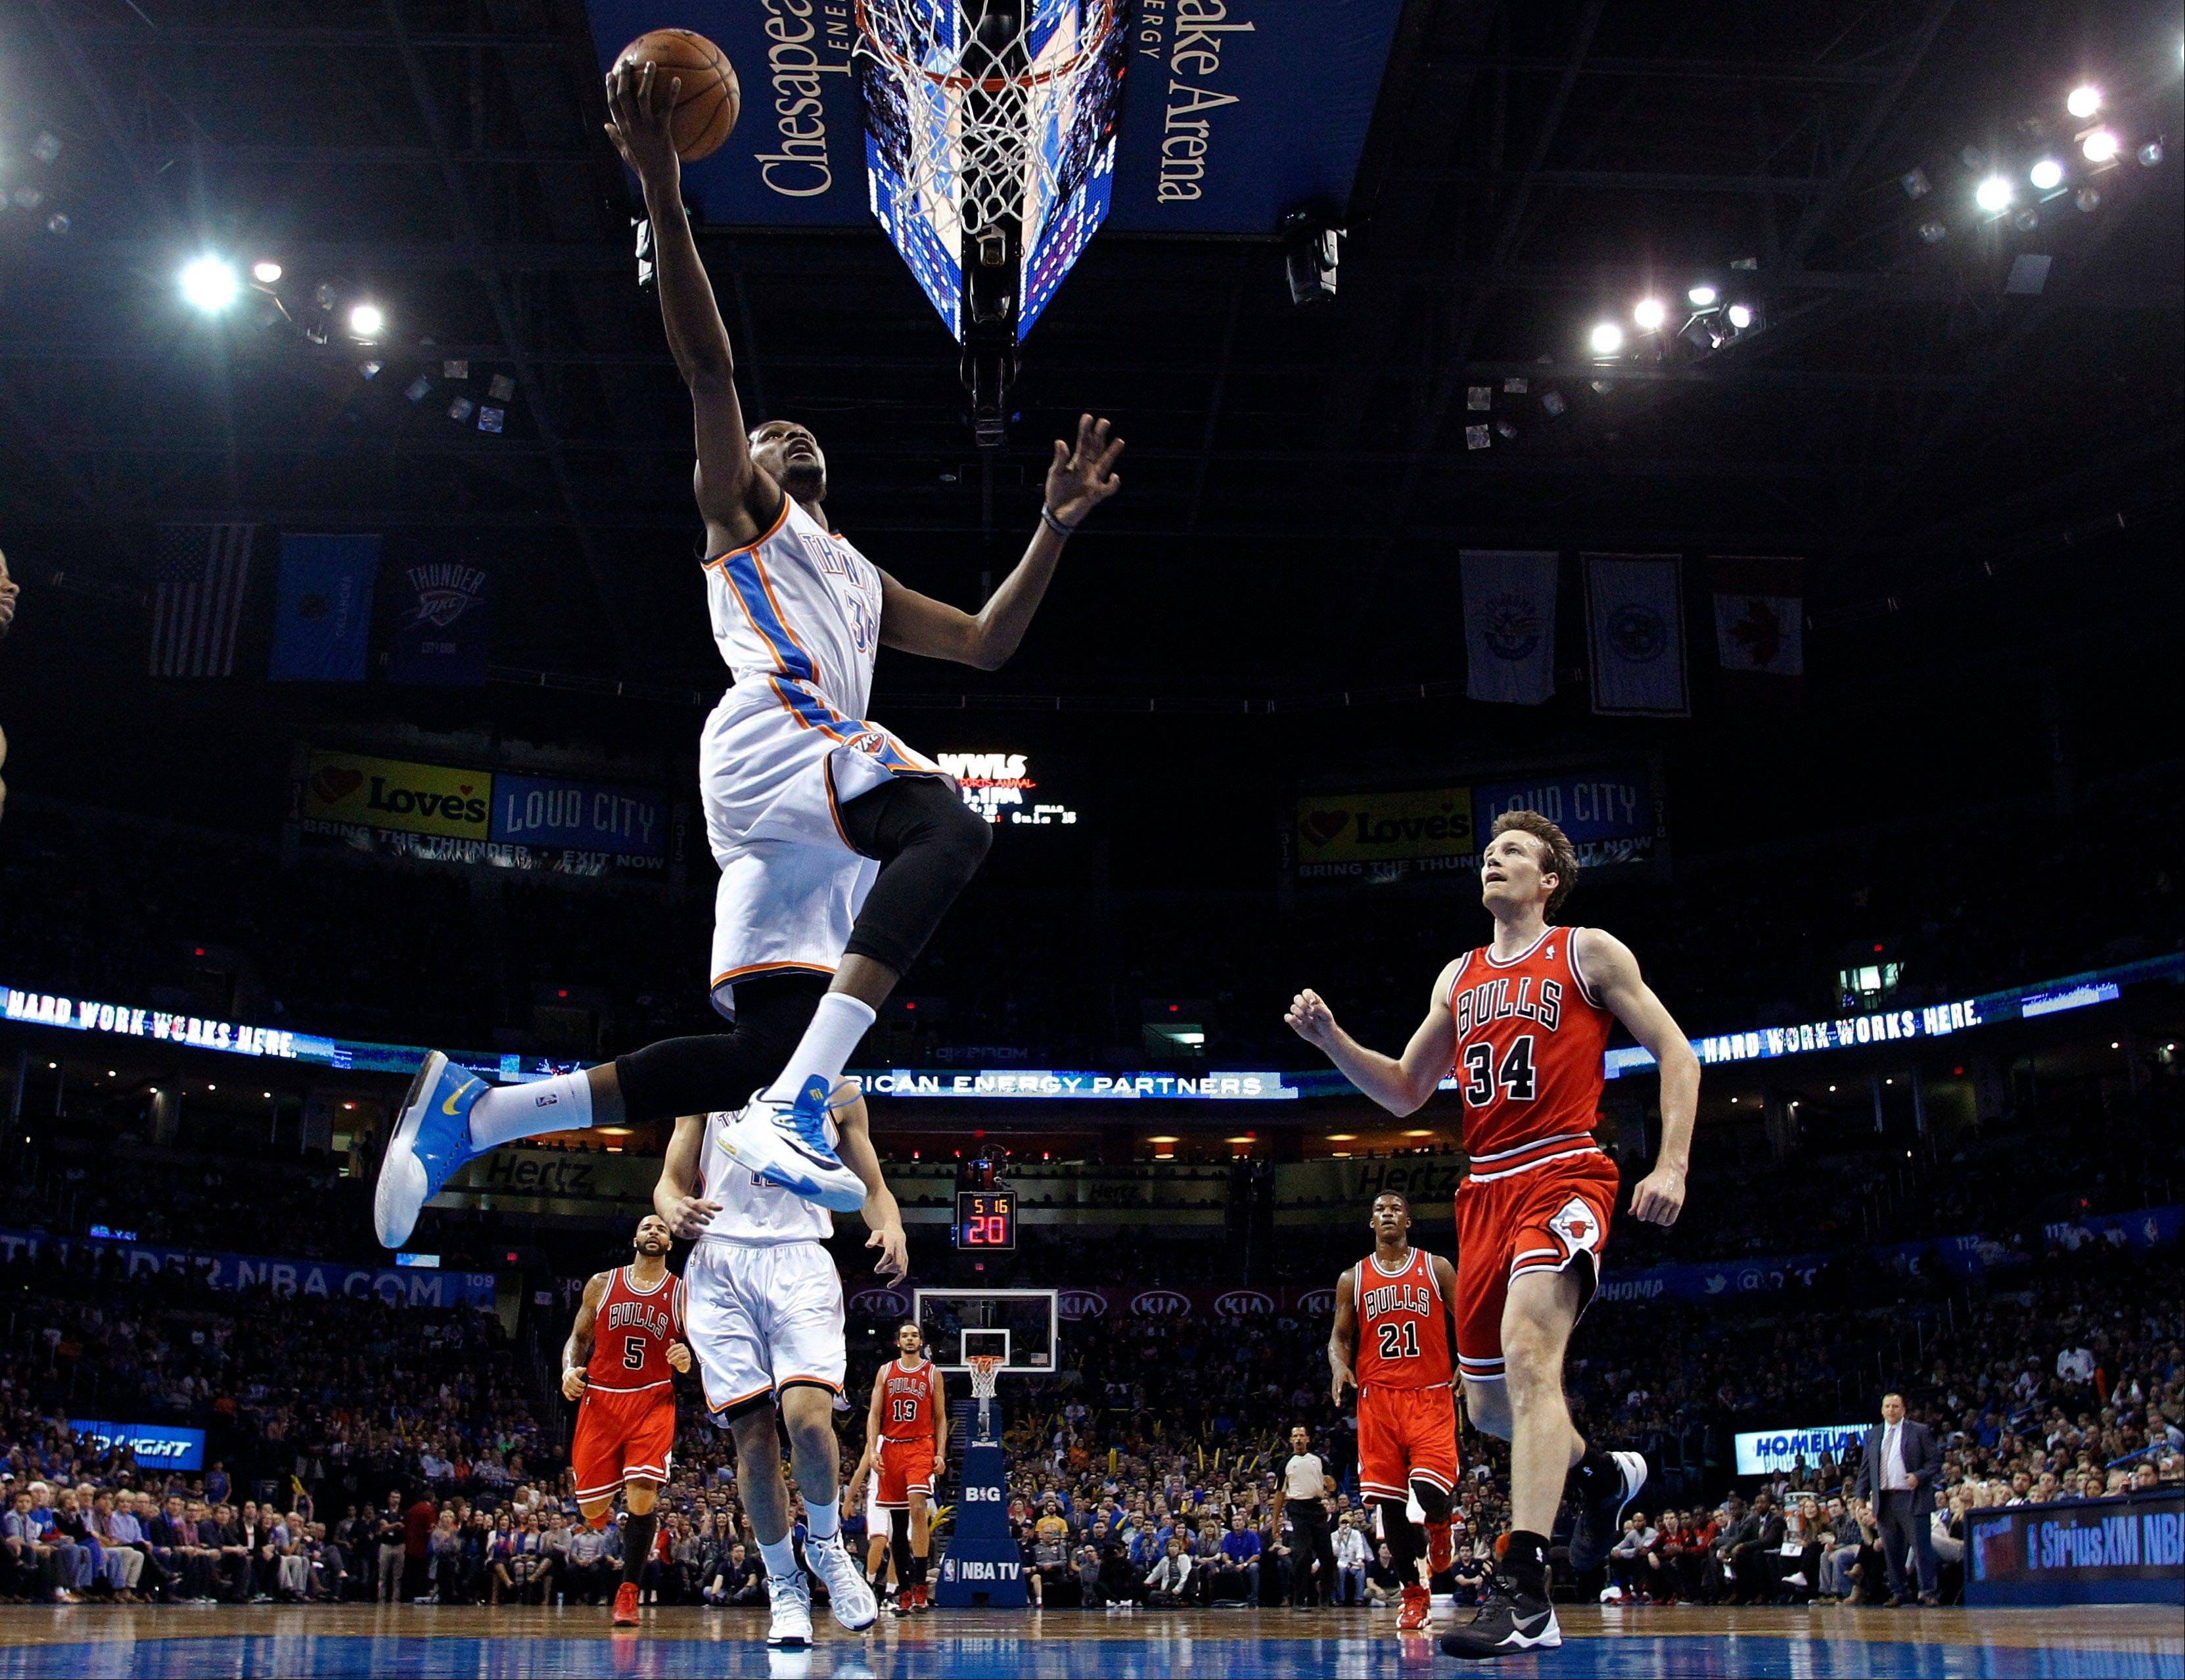 Oklahoma City Thunder forward Kevin Durant (35) shoots in front of Chicago Bulls forward Mike Dunleavy (34) during the first quarter of an NBA basketball game in Oklahoma City, Thursday, Dec. 19, 2013. (AP Photo/Sue Ogrocki)